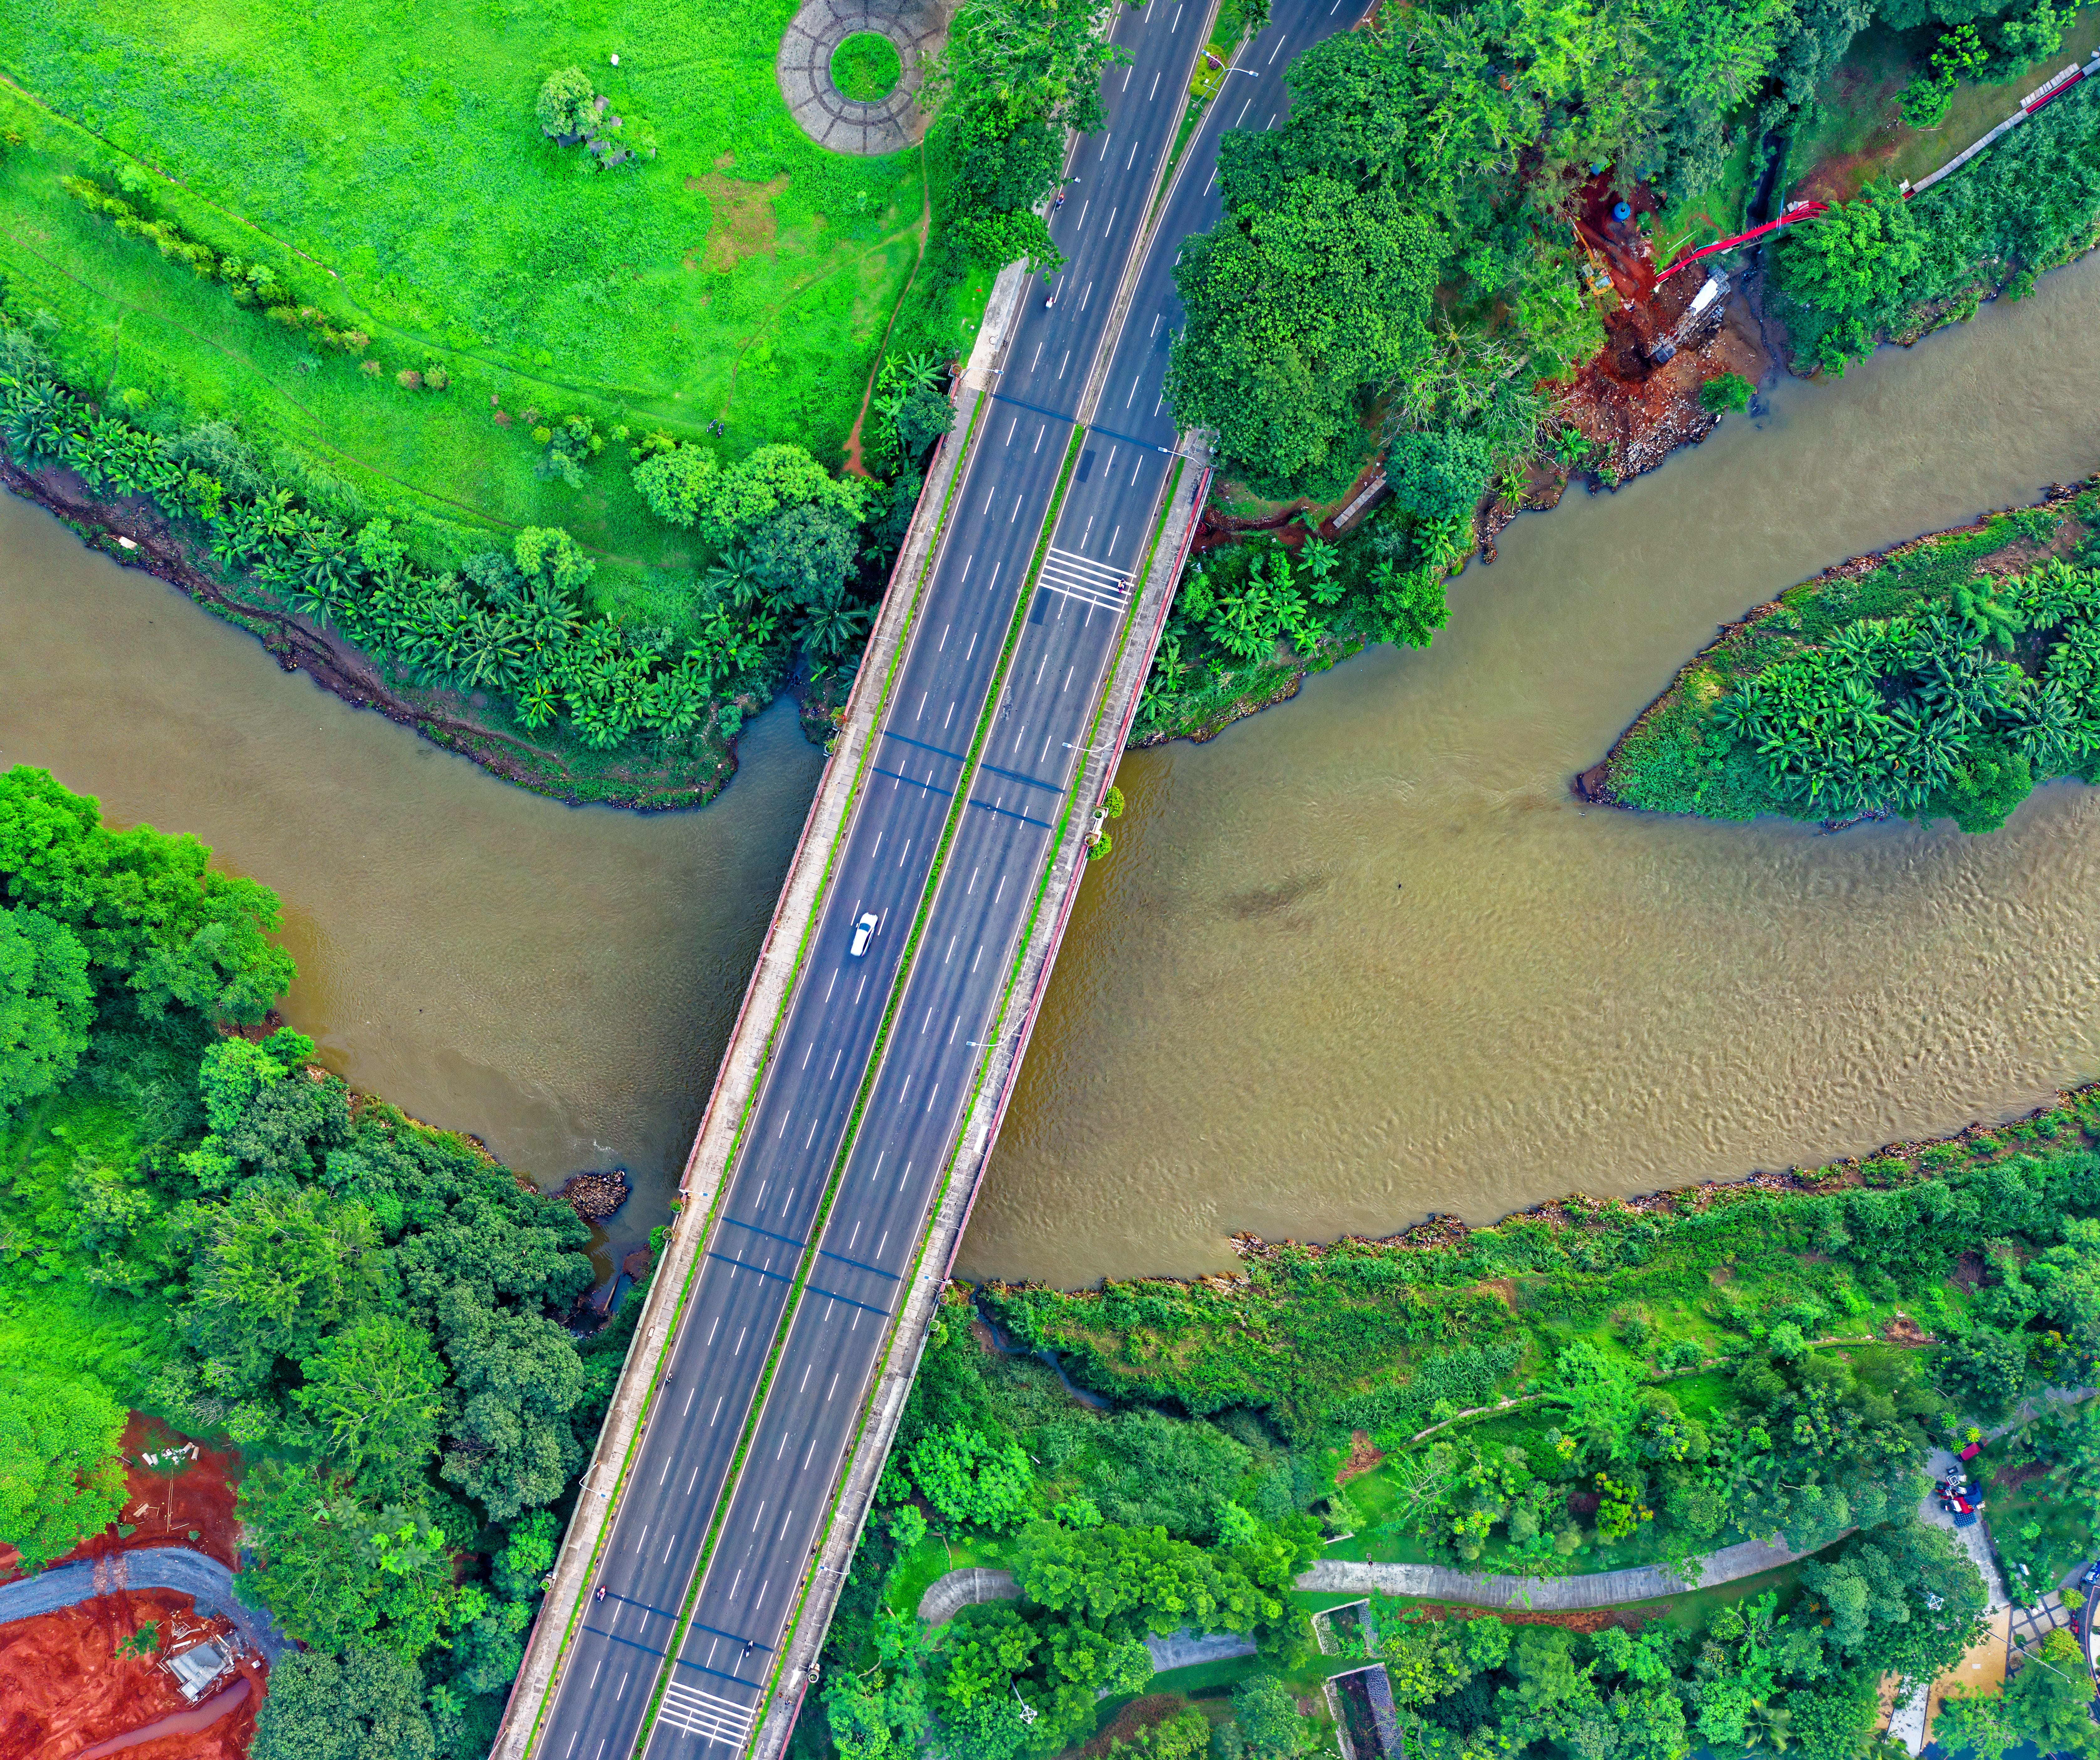 Aerial Photography of Bridge Above Water and Trees